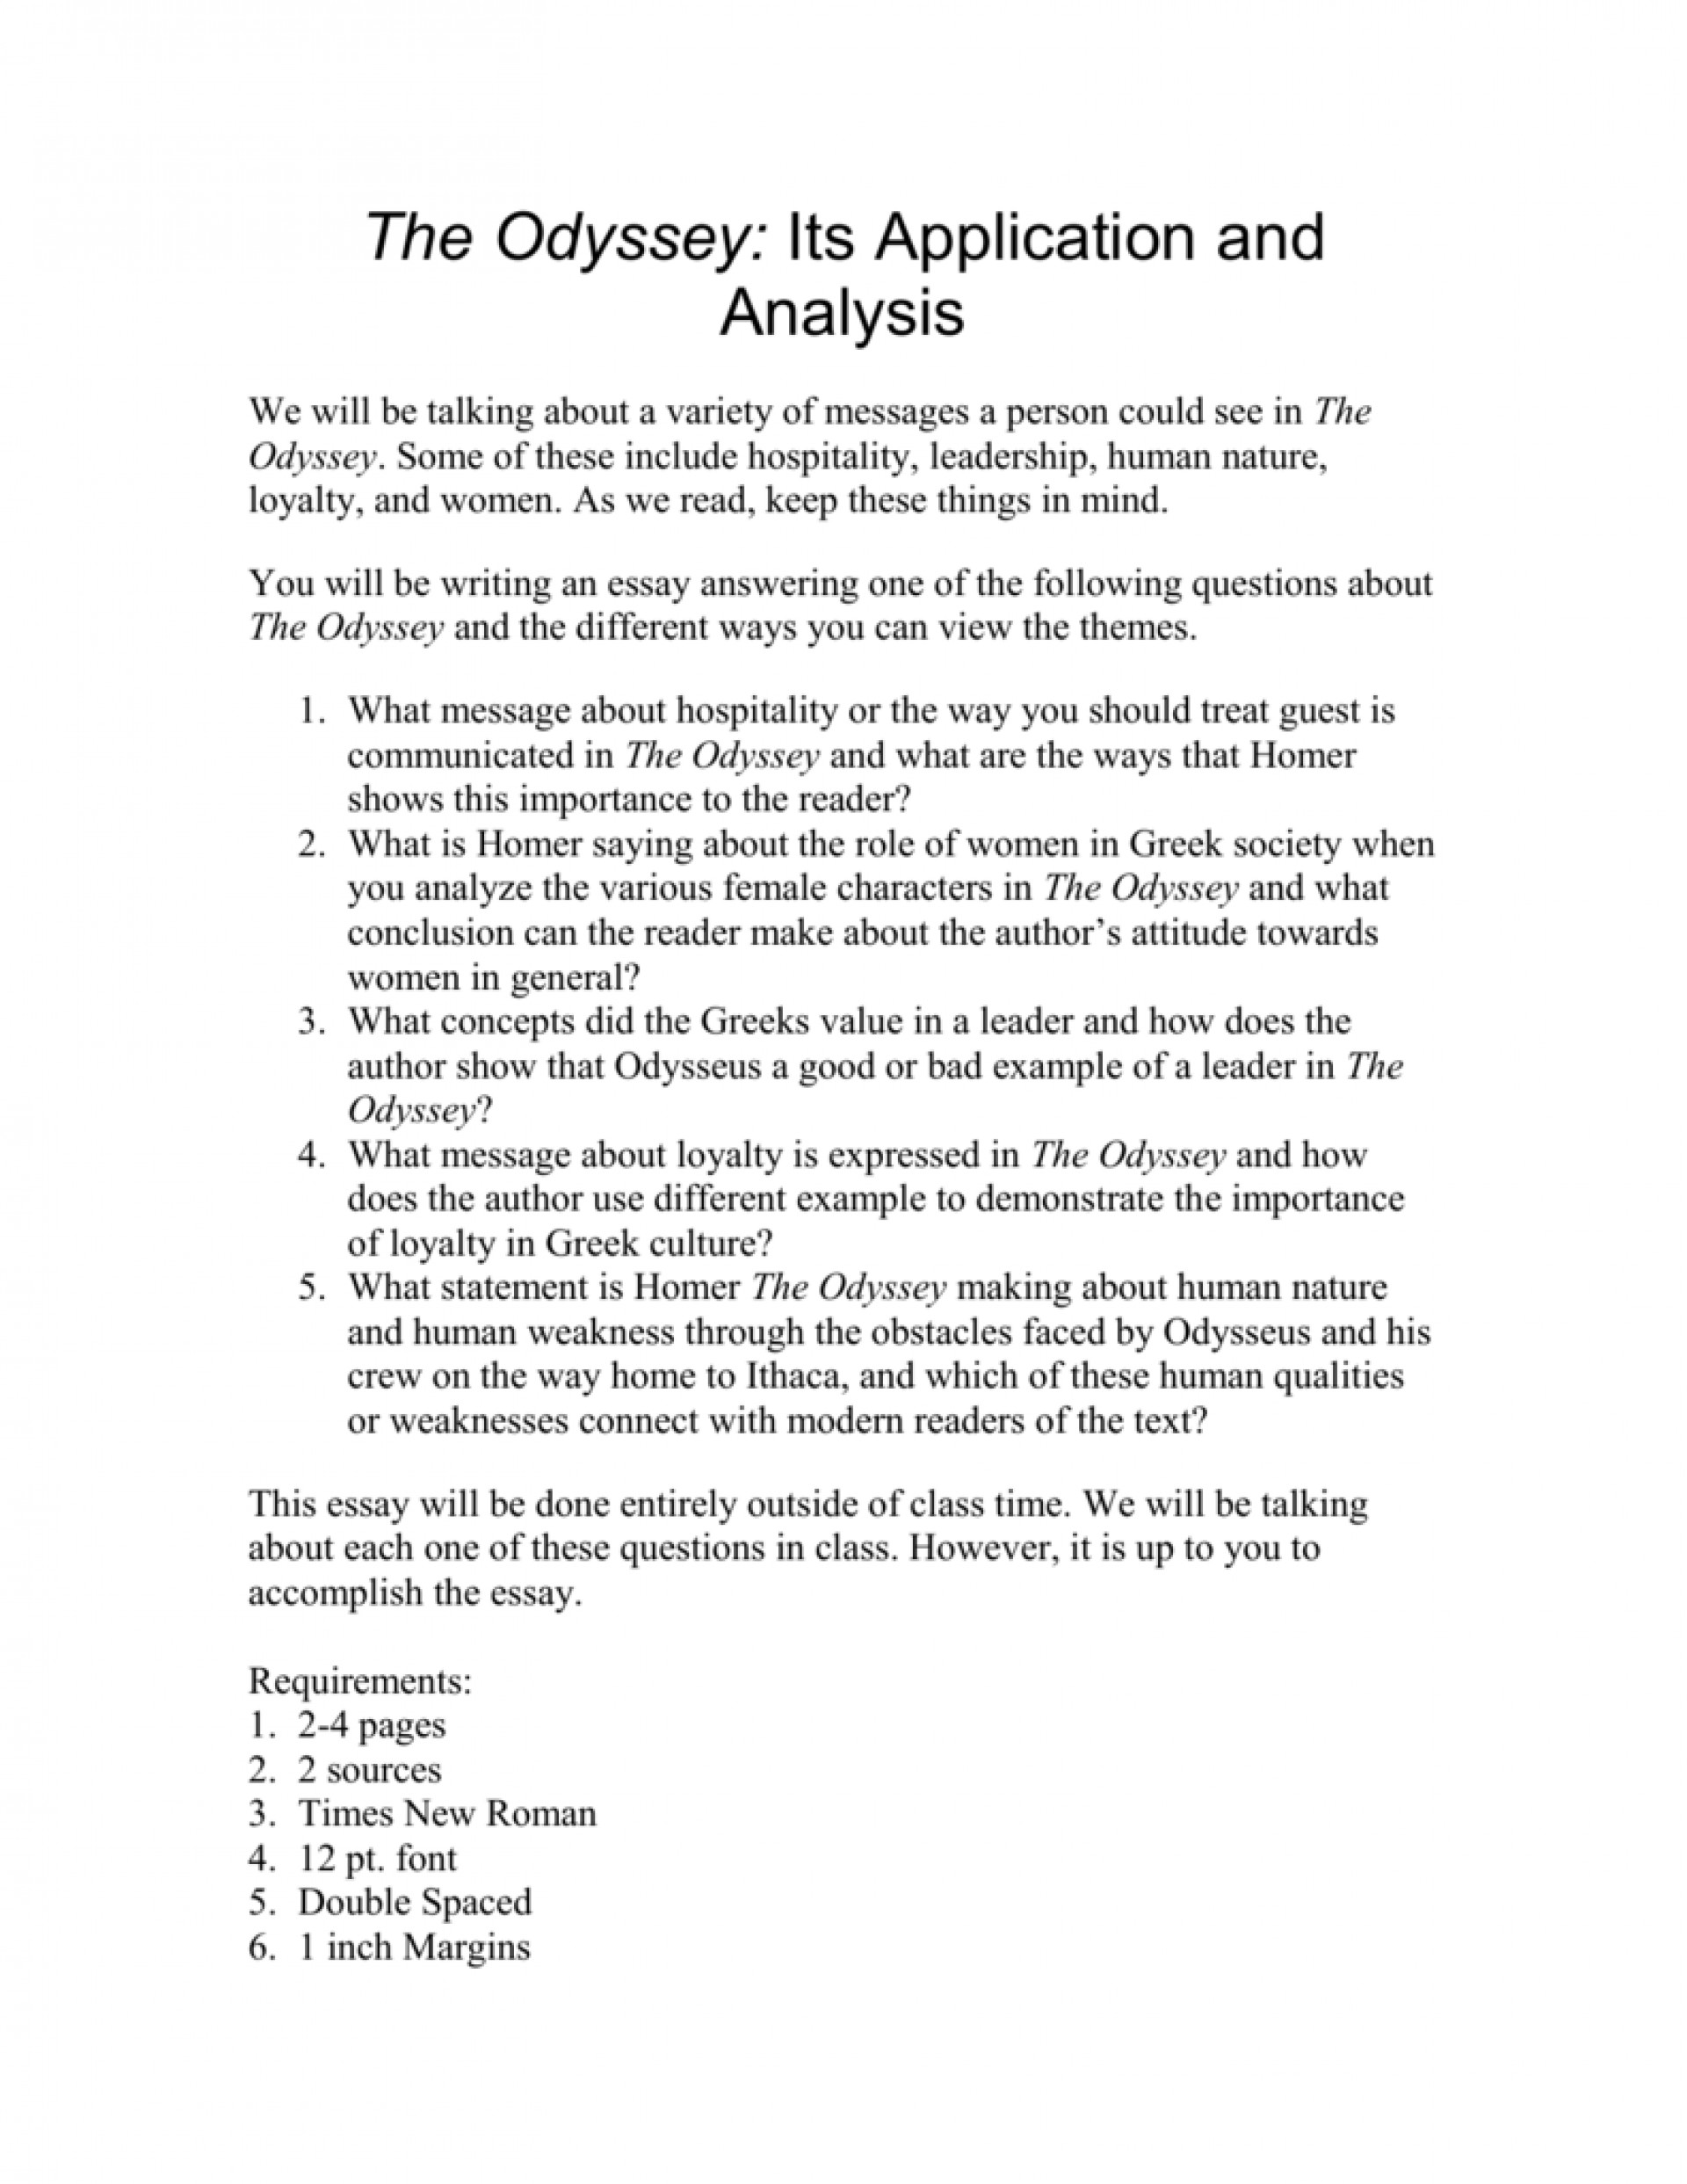 009 Essay Example Odyssey Topics 008004991 1 Amazing Prompt Prompts 1920